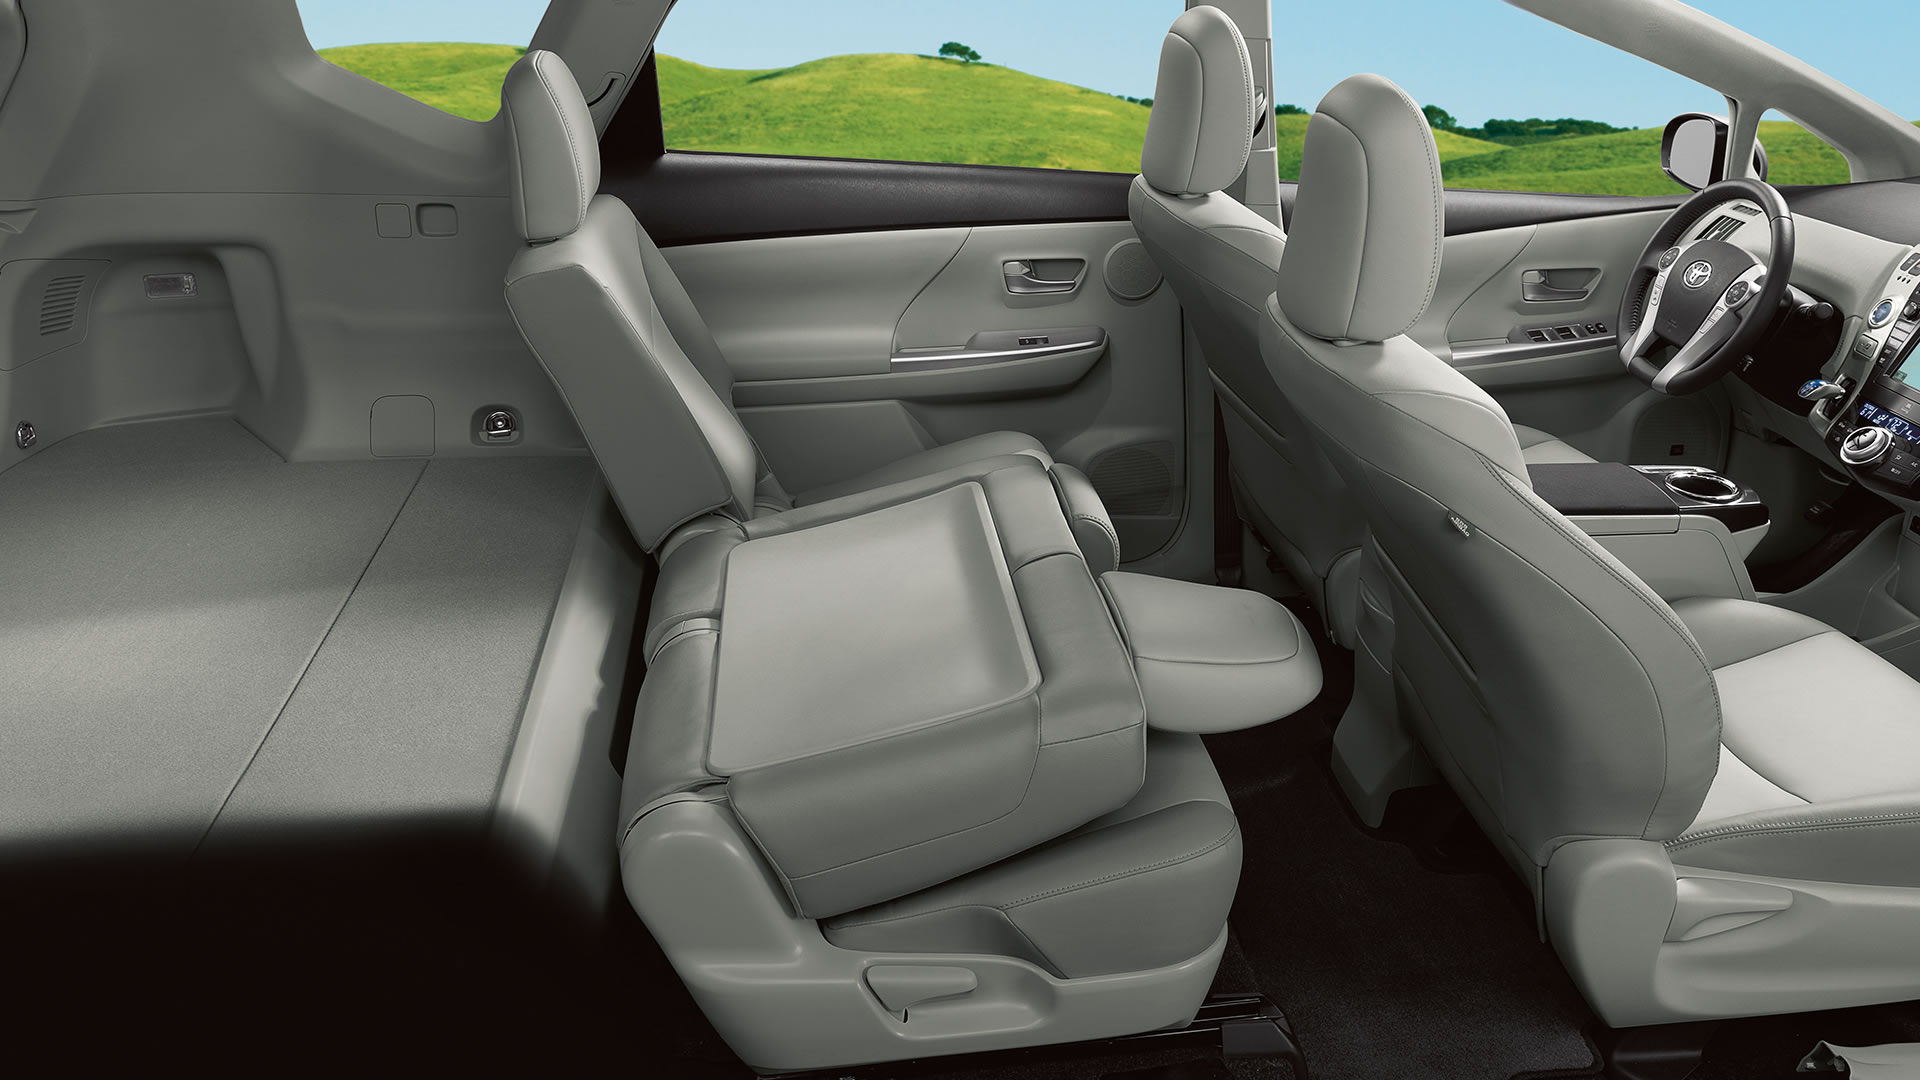 2014 toyota prius v interior hesser toyota. Black Bedroom Furniture Sets. Home Design Ideas